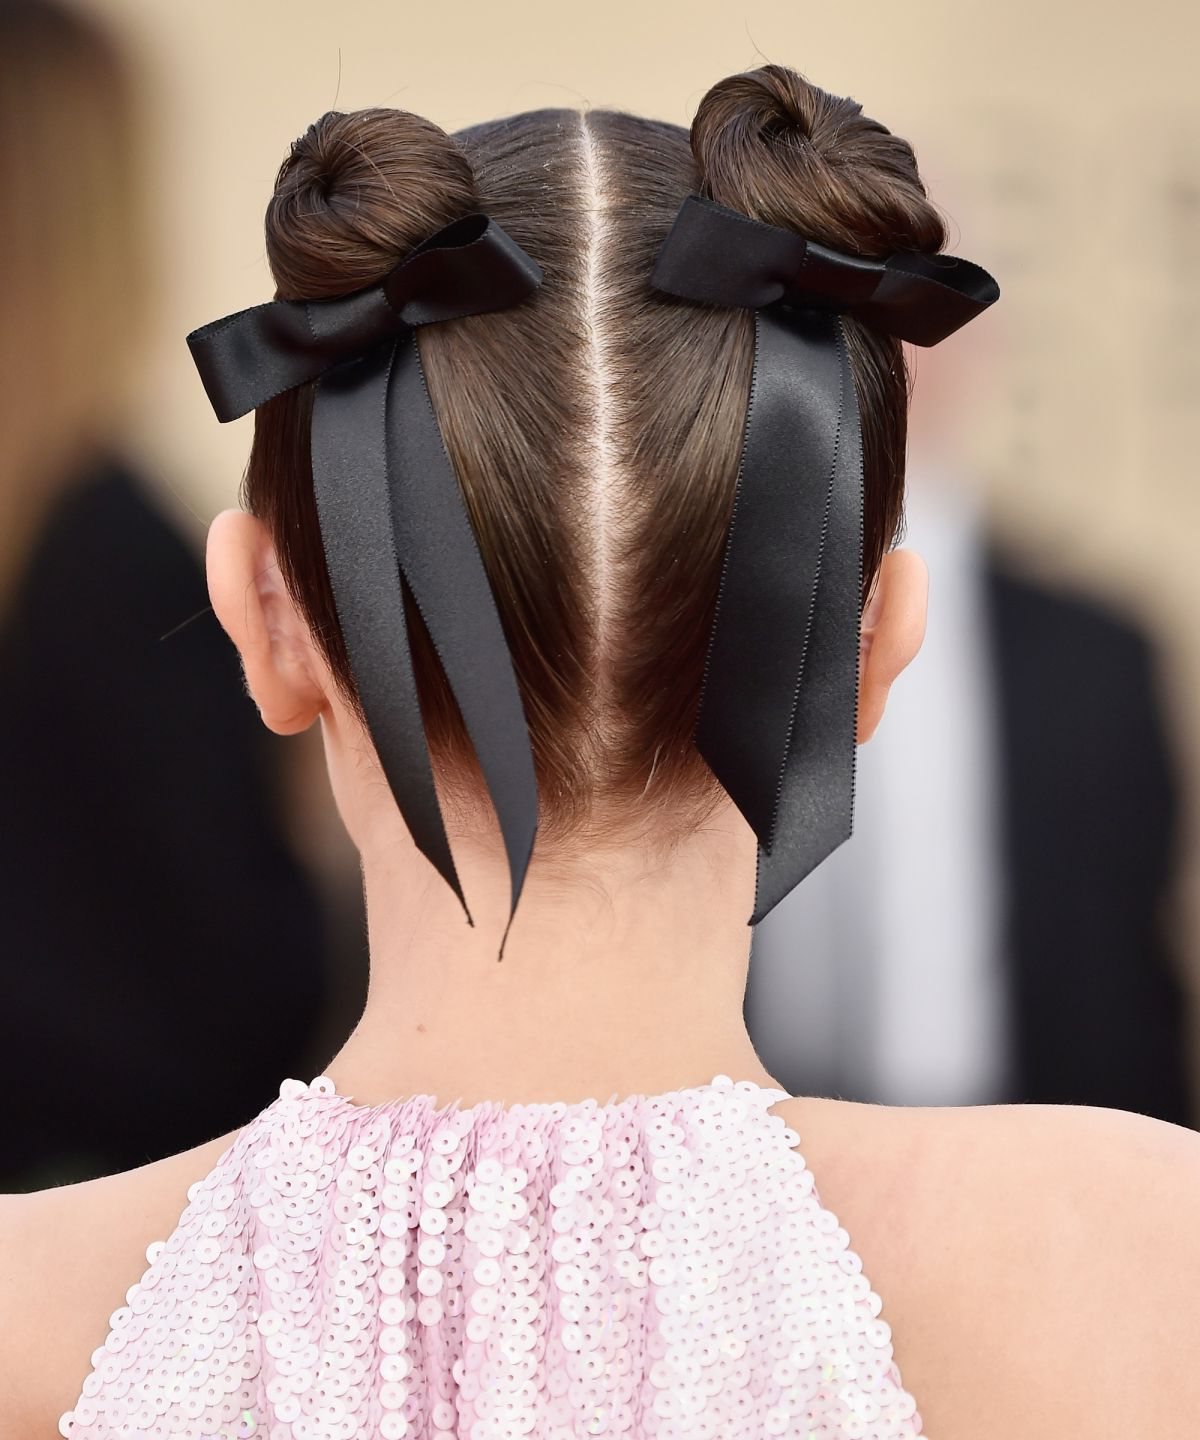 2018 Black Bow Ponytail Hairstyles Pertaining To Celebrities Love This Throwback Hair Bow Ribbon Trend (View 2 of 20)